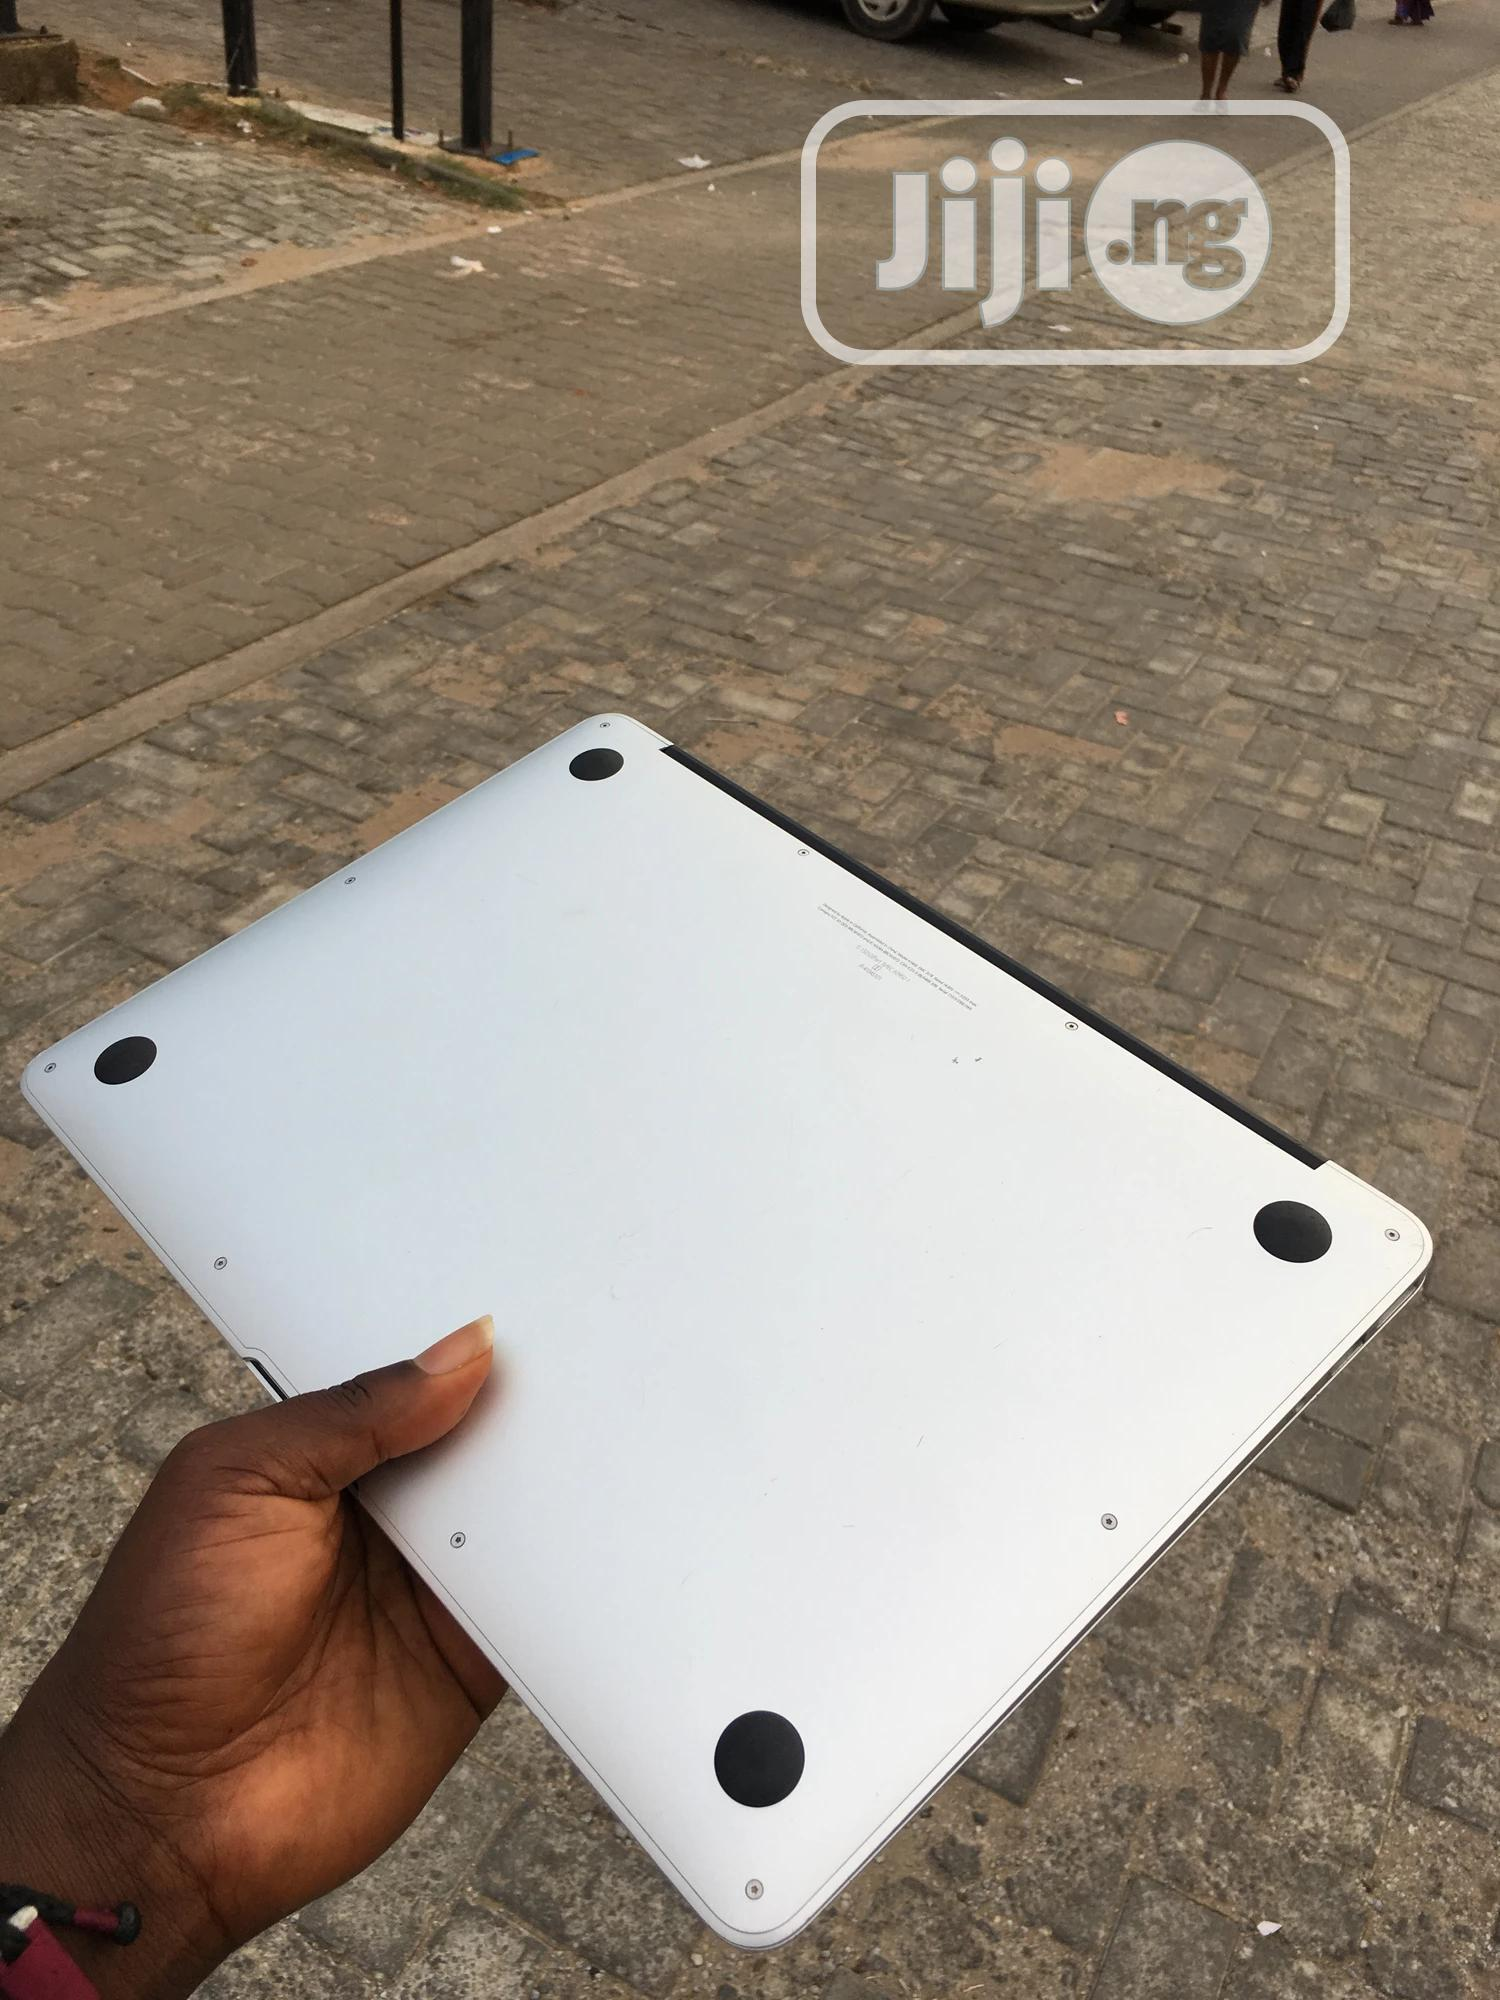 Laptop Apple MacBook Air 2017 8GB Intel Core i5 SSD 128GB | Laptops & Computers for sale in Wuse 2, Abuja (FCT) State, Nigeria